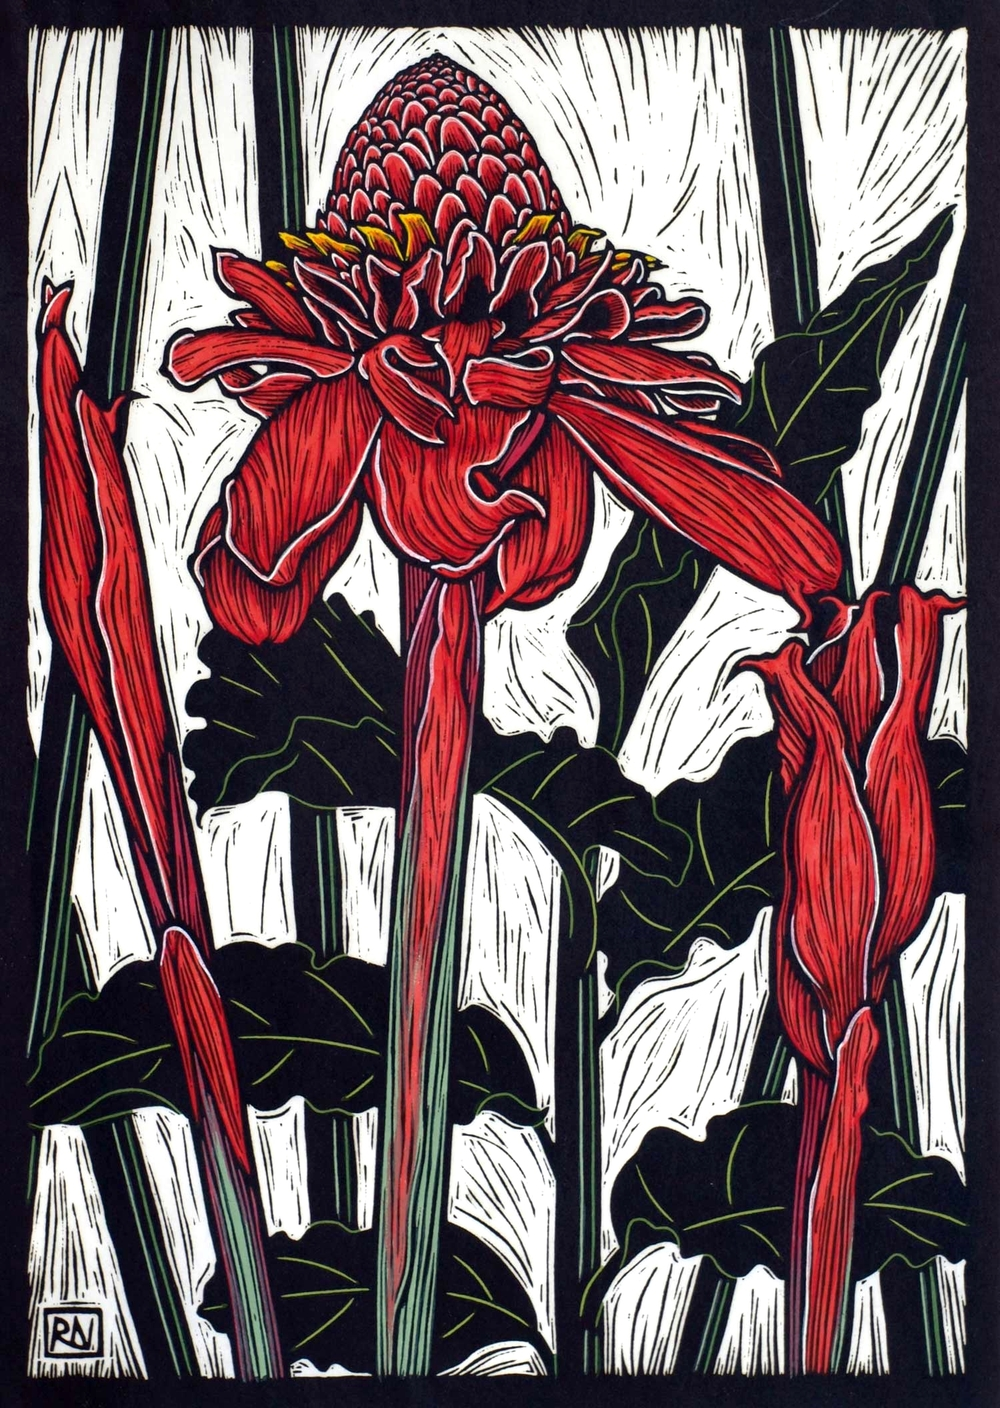 TORCH GINGER  49 X 35 CM    EDITION OF 50  HAND COLOURED LINOCUT ON HANDMADE JAPANESE PAPER  $1,050